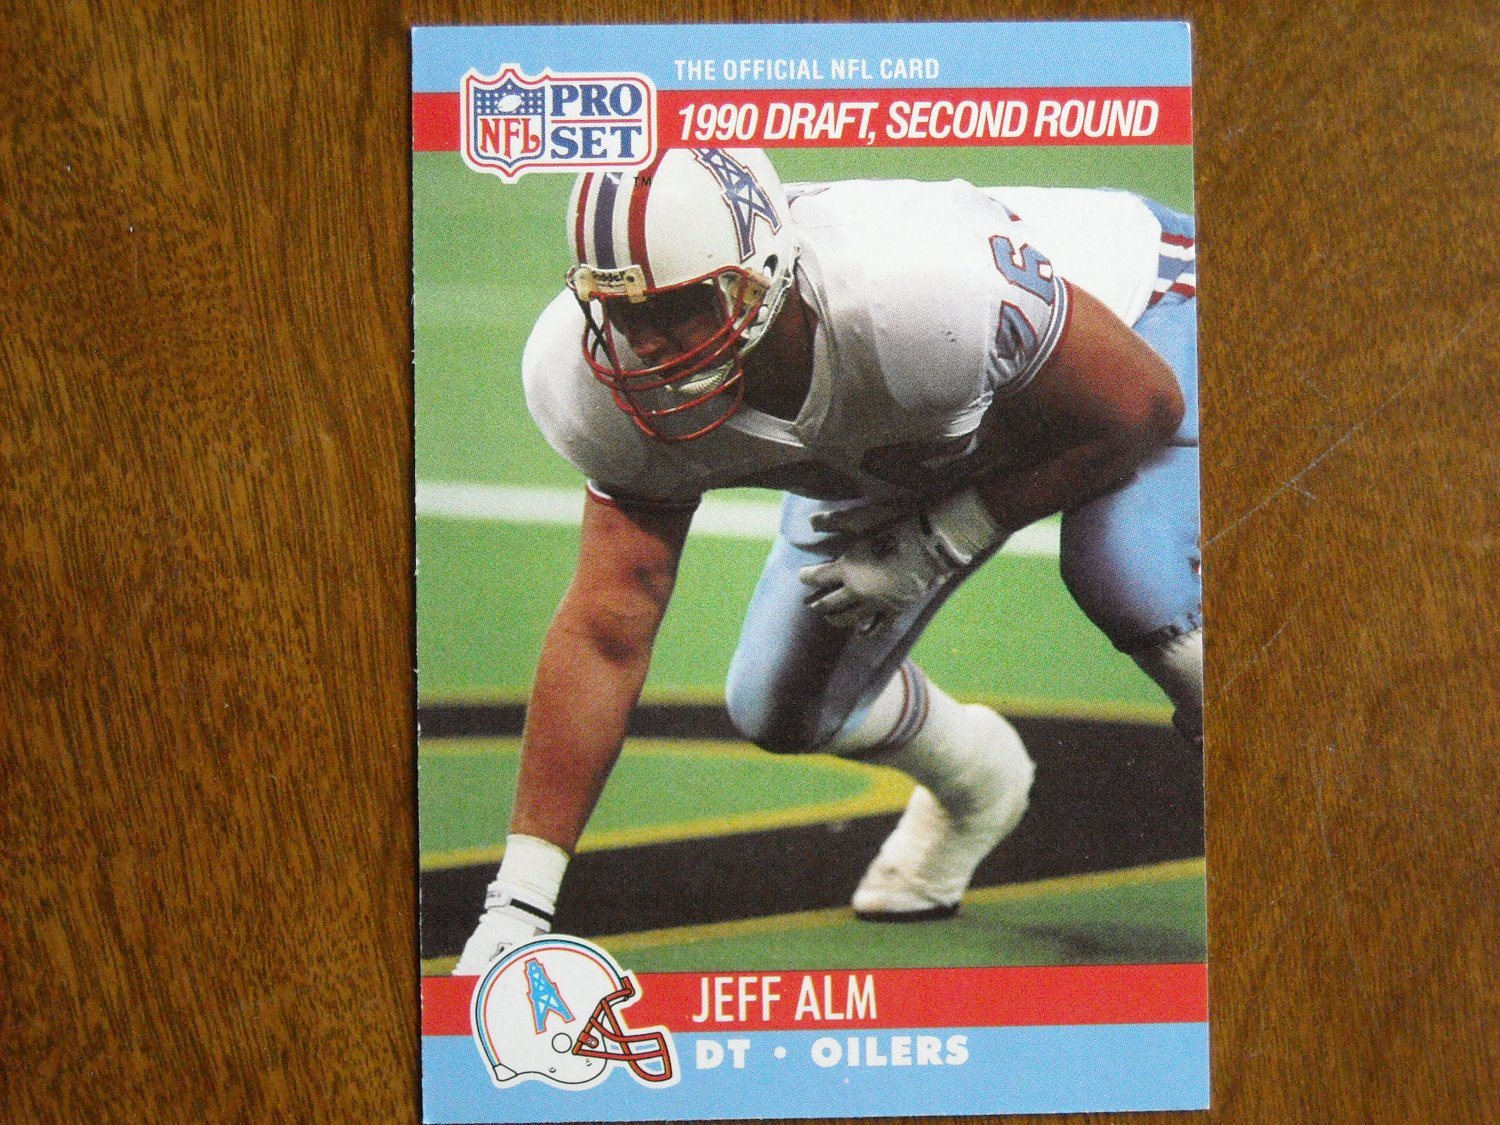 Jeff Alm Houston Oilers DT Card No. 710 - 1990 NFL Pro Set Football Card